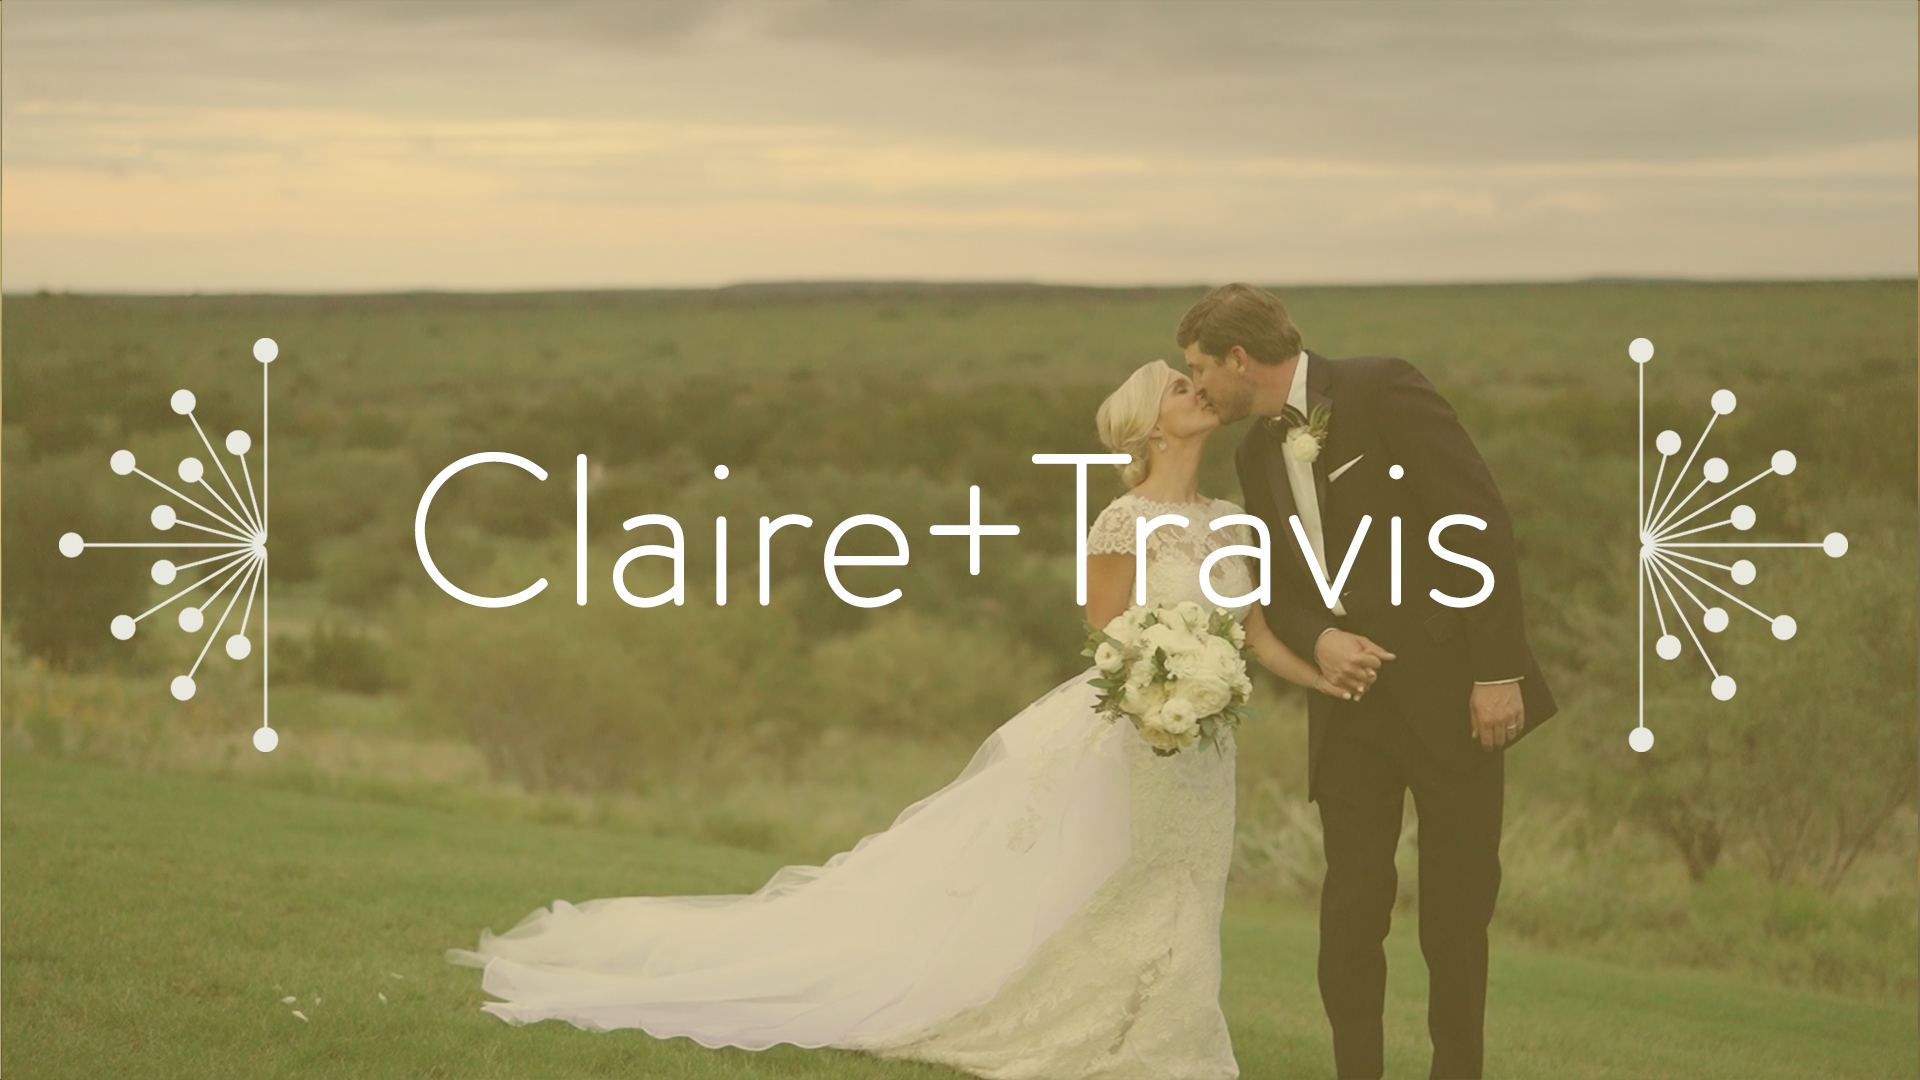 Claire + Travis | Breckenridge, Texas | Family Farm